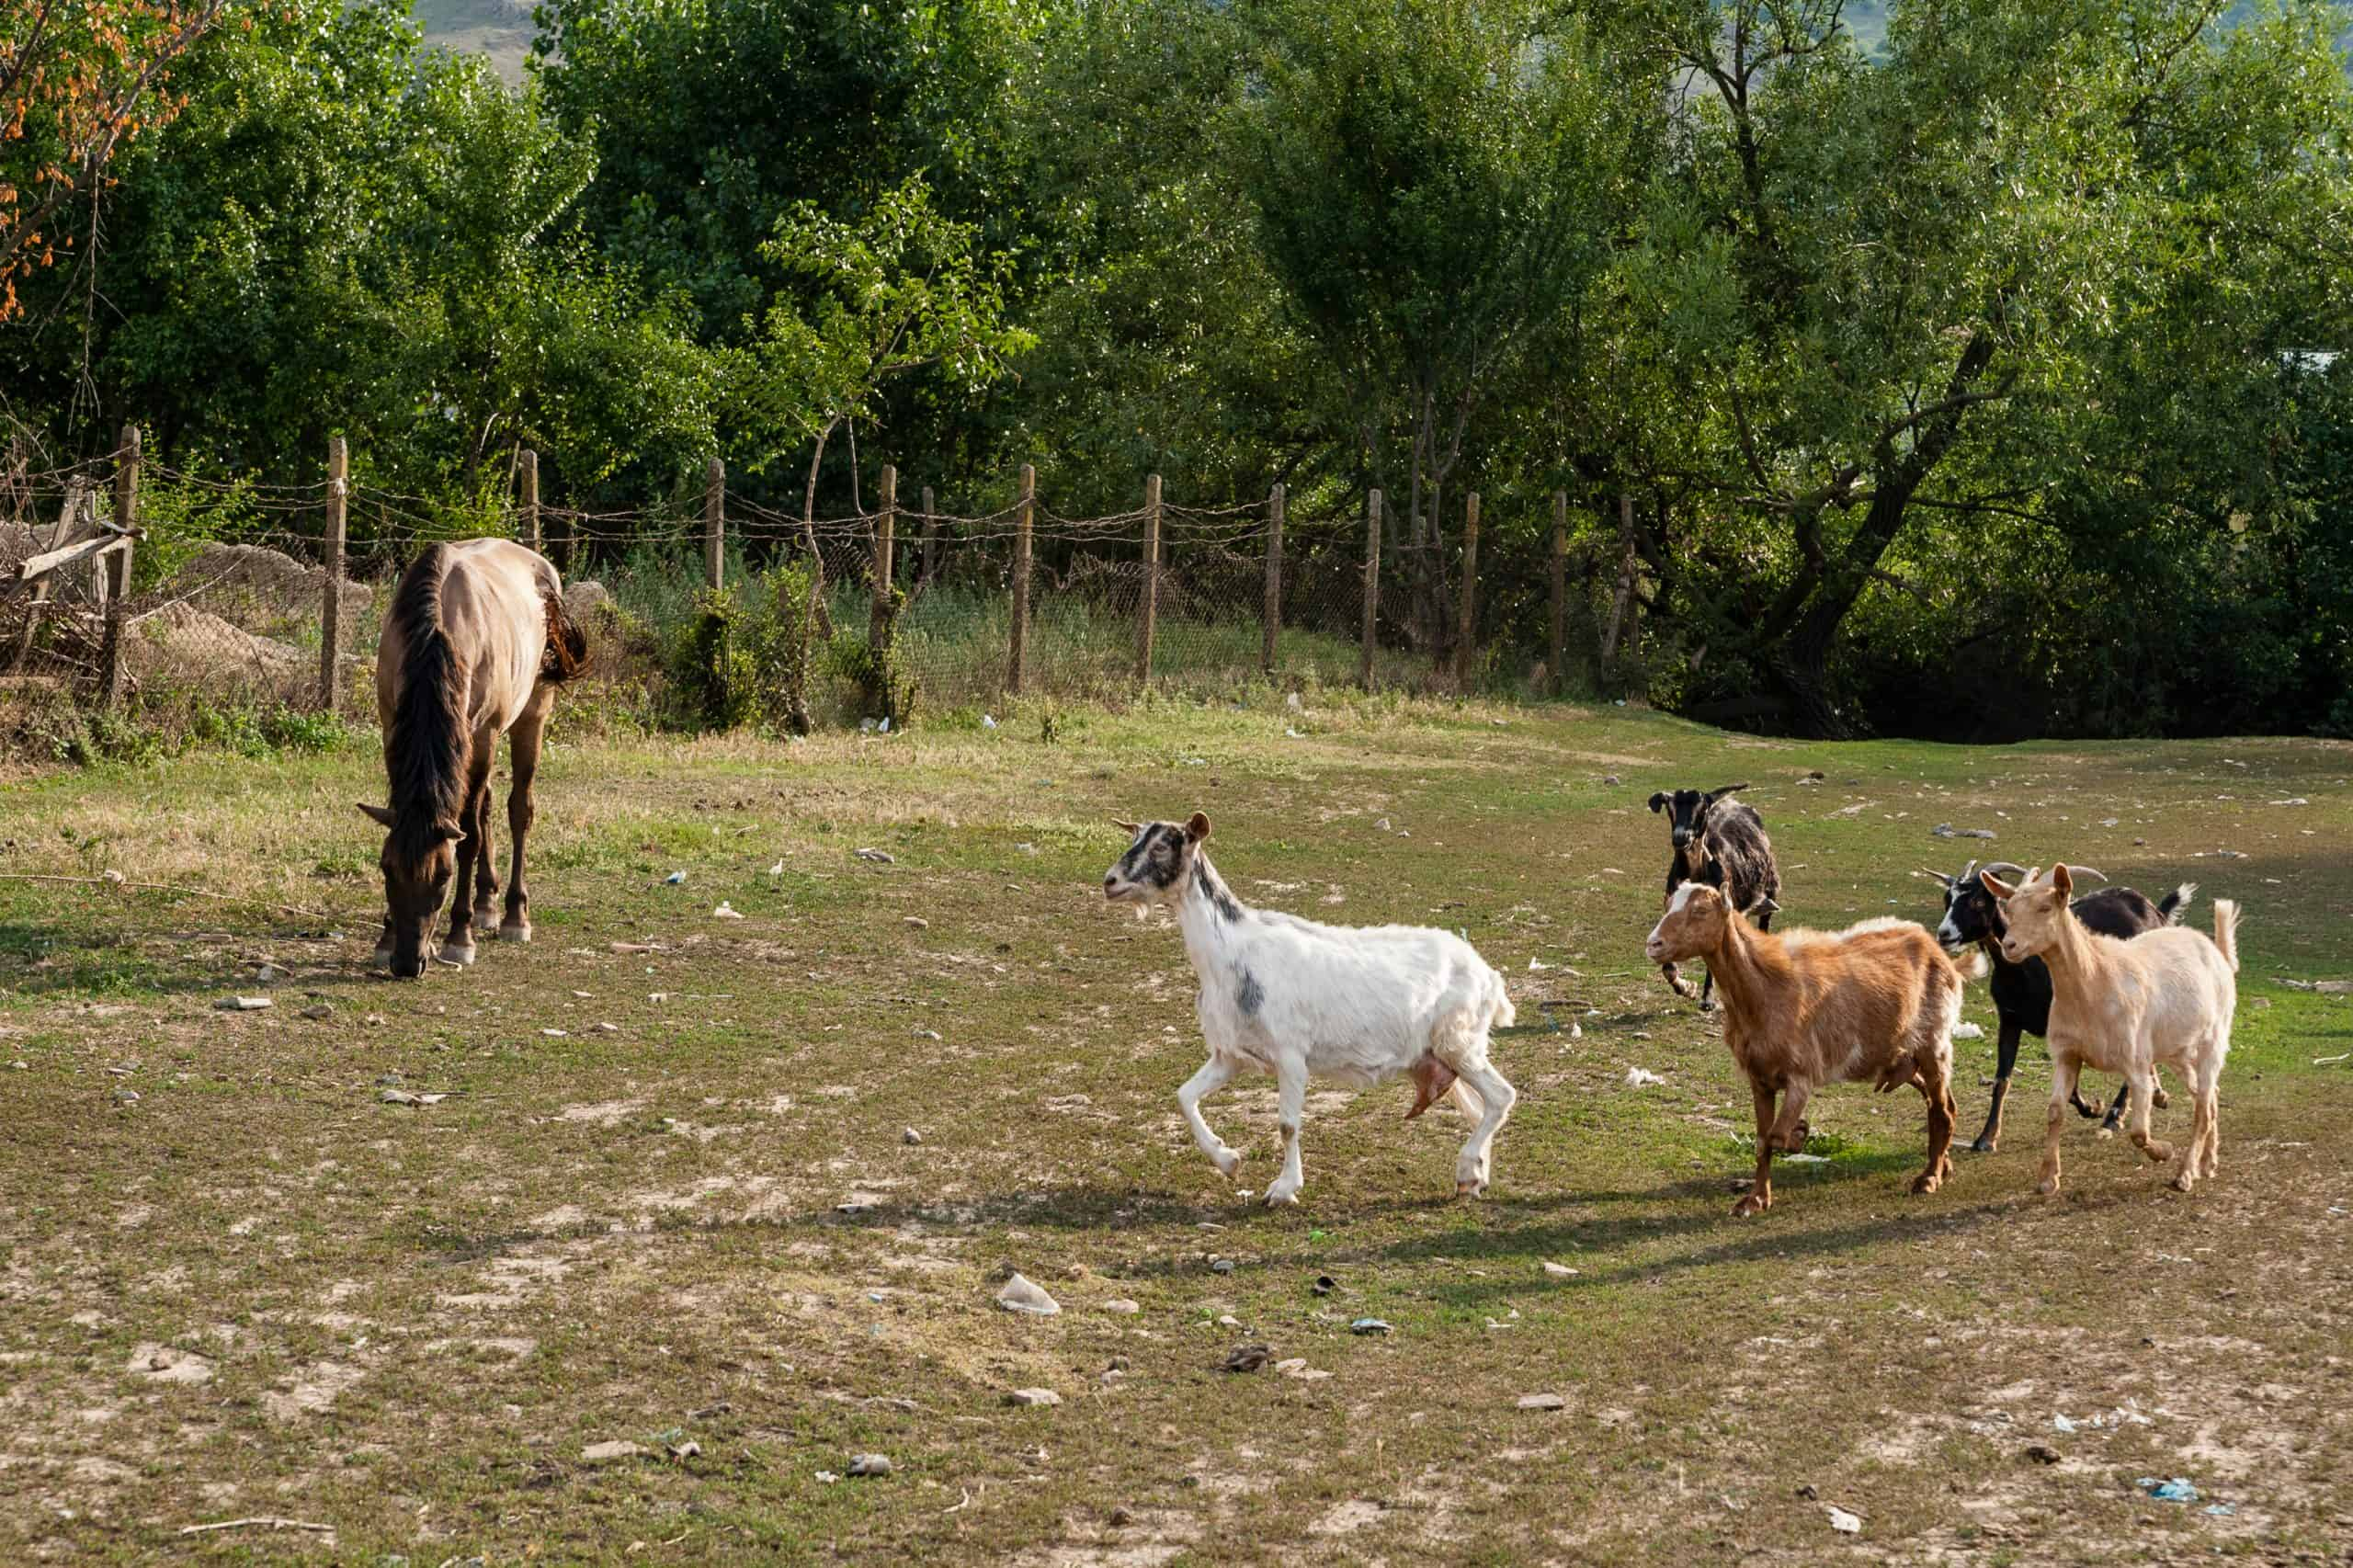 A horse is pasturing on a lawn while some goats walk past it.